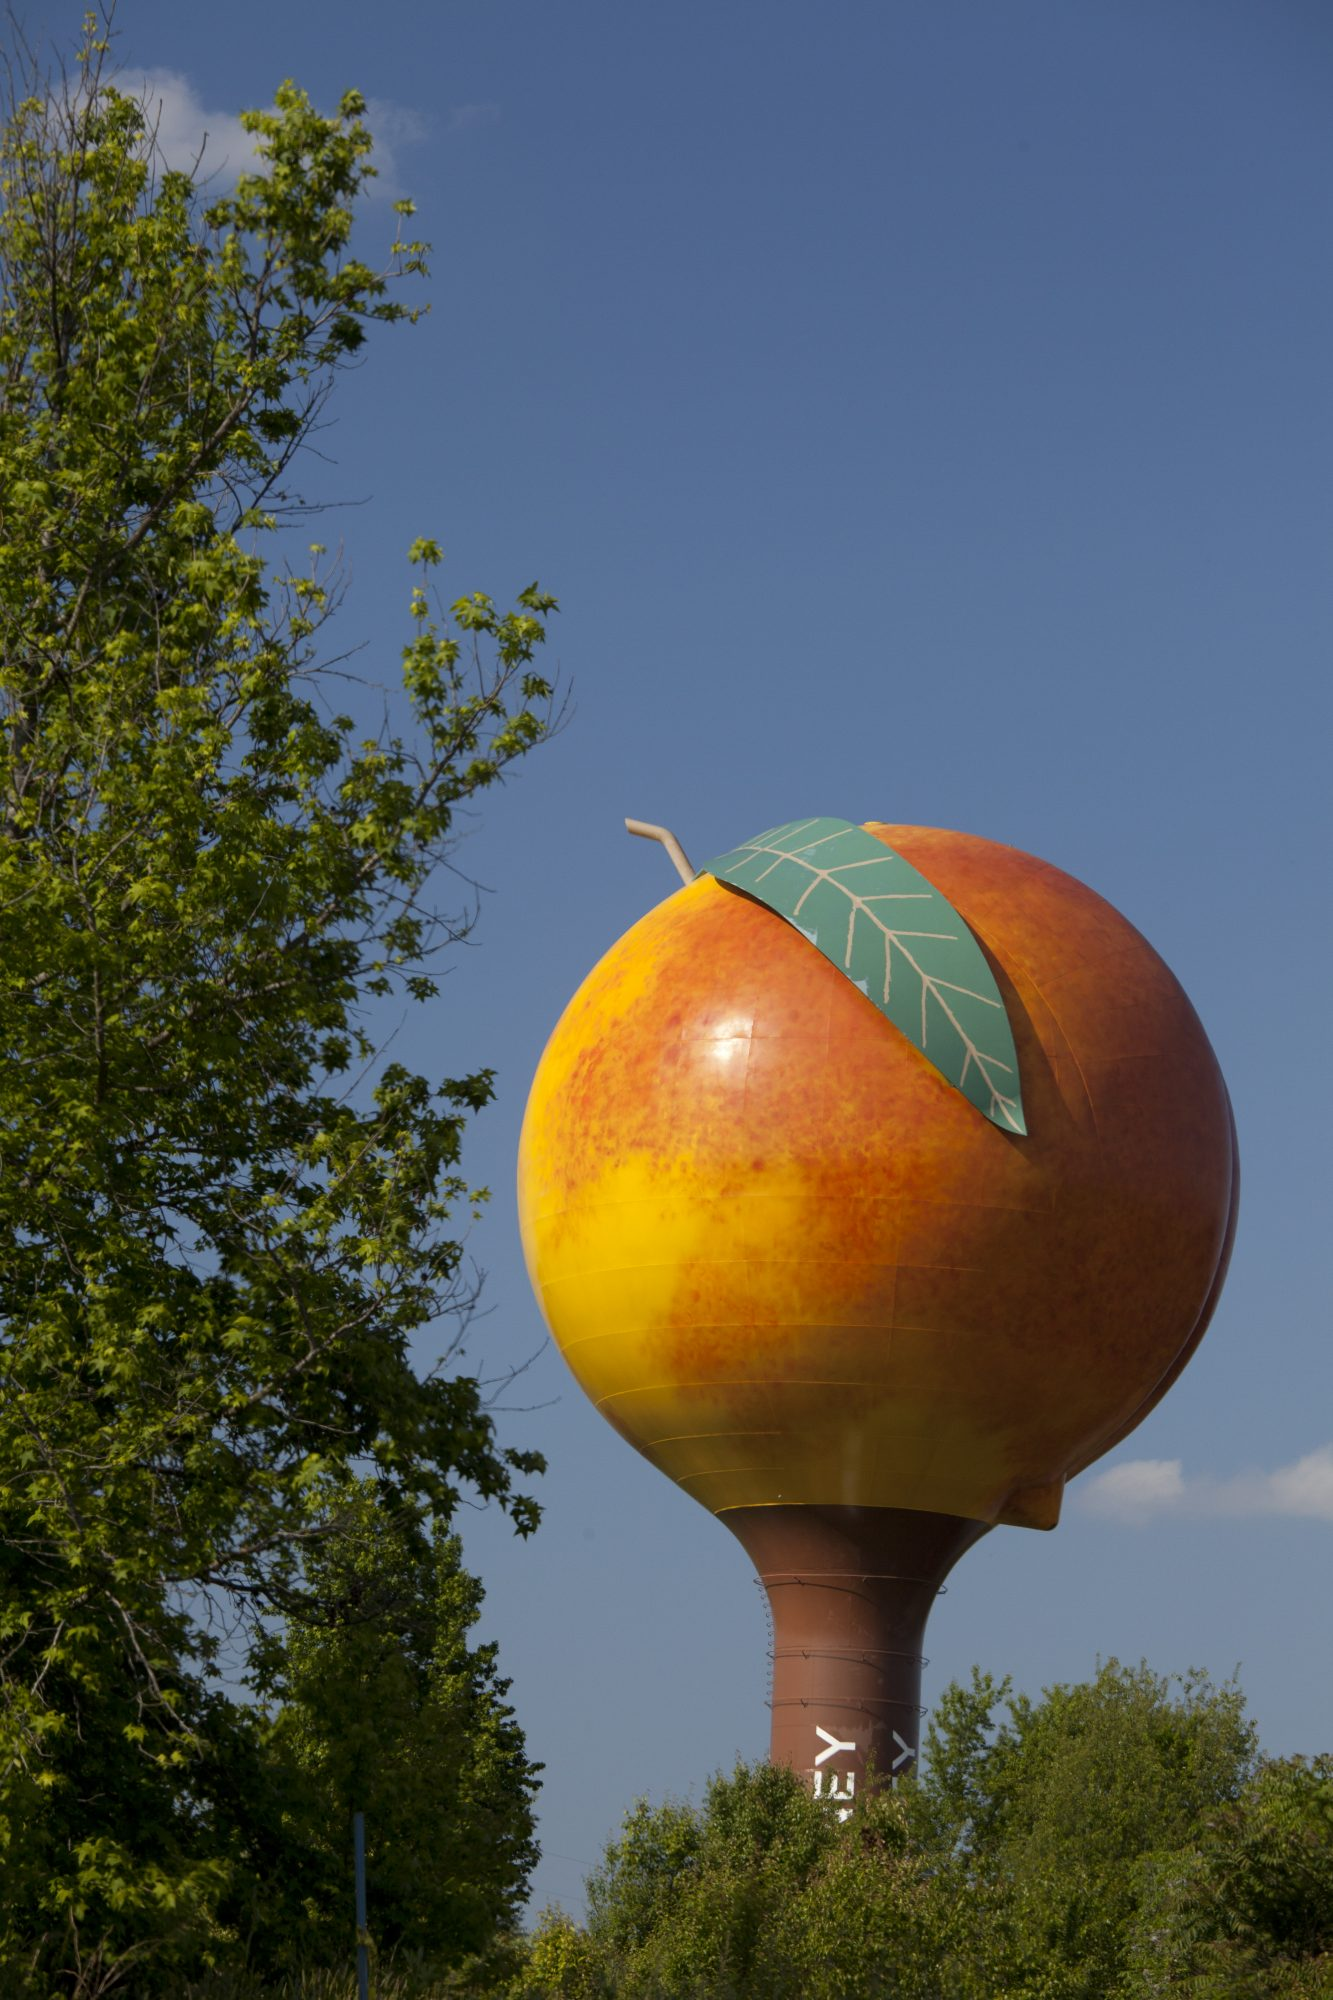 Peachoid Water Tower in Gaffney, SC